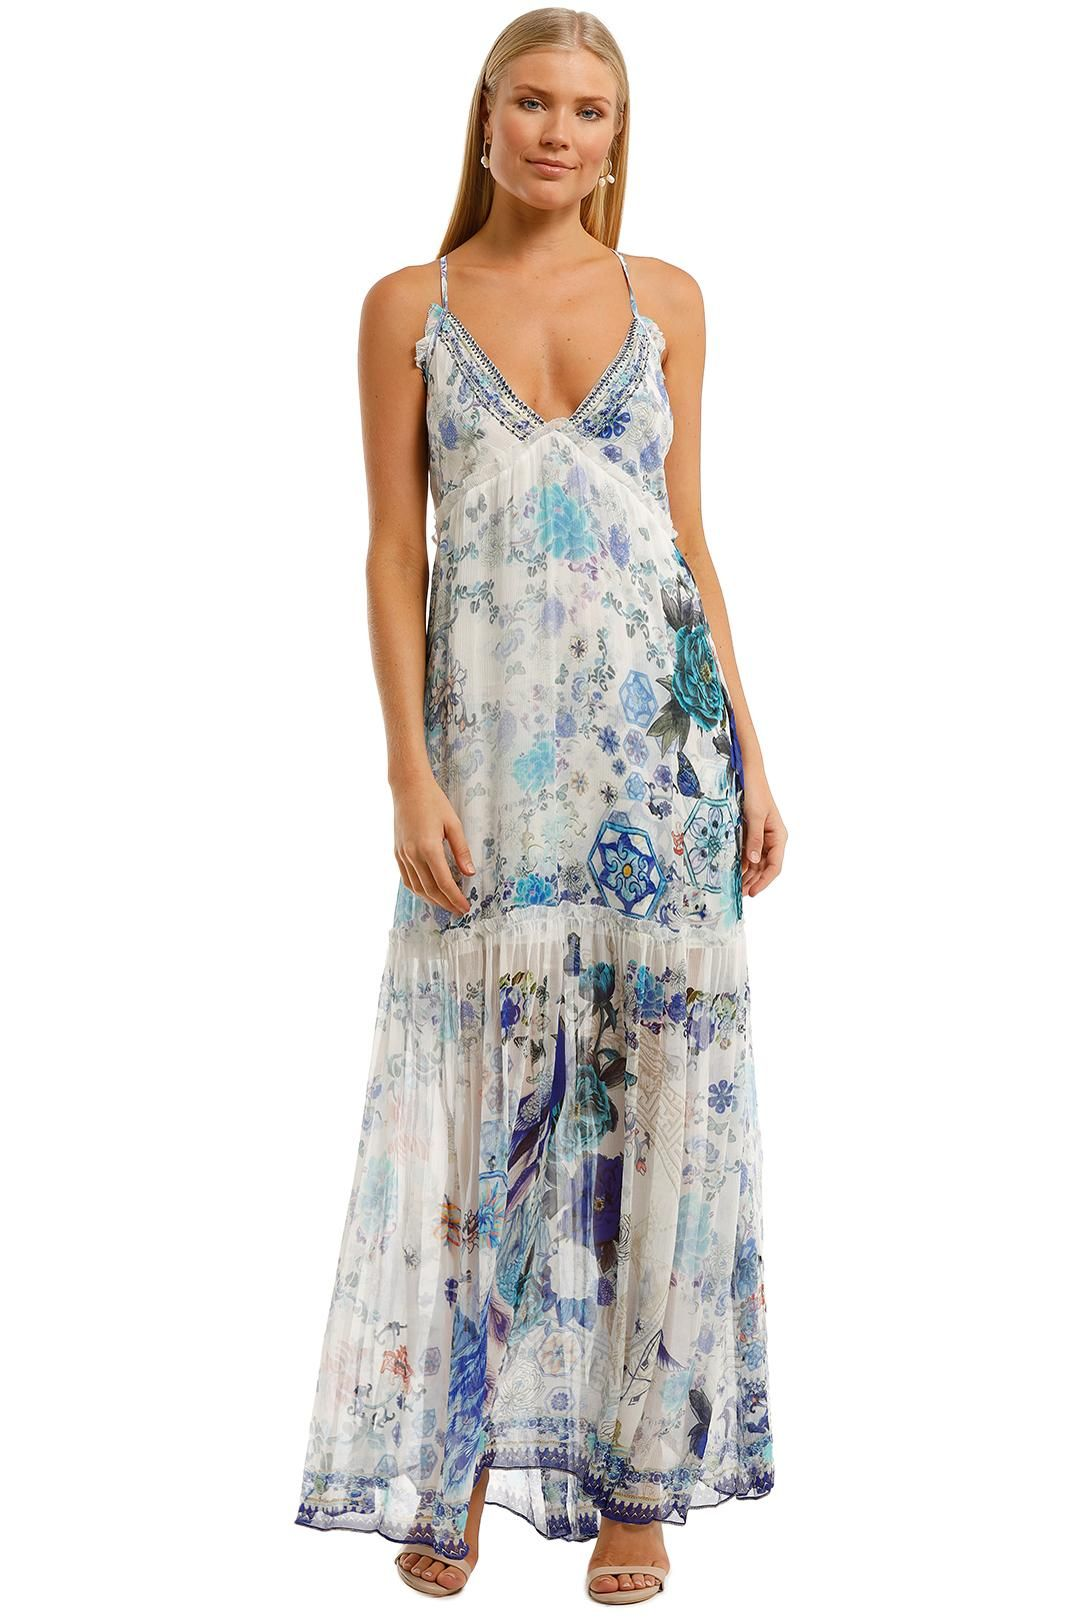 Camilla Shoestring Strap Gathered Dress Blue Maxi Dress